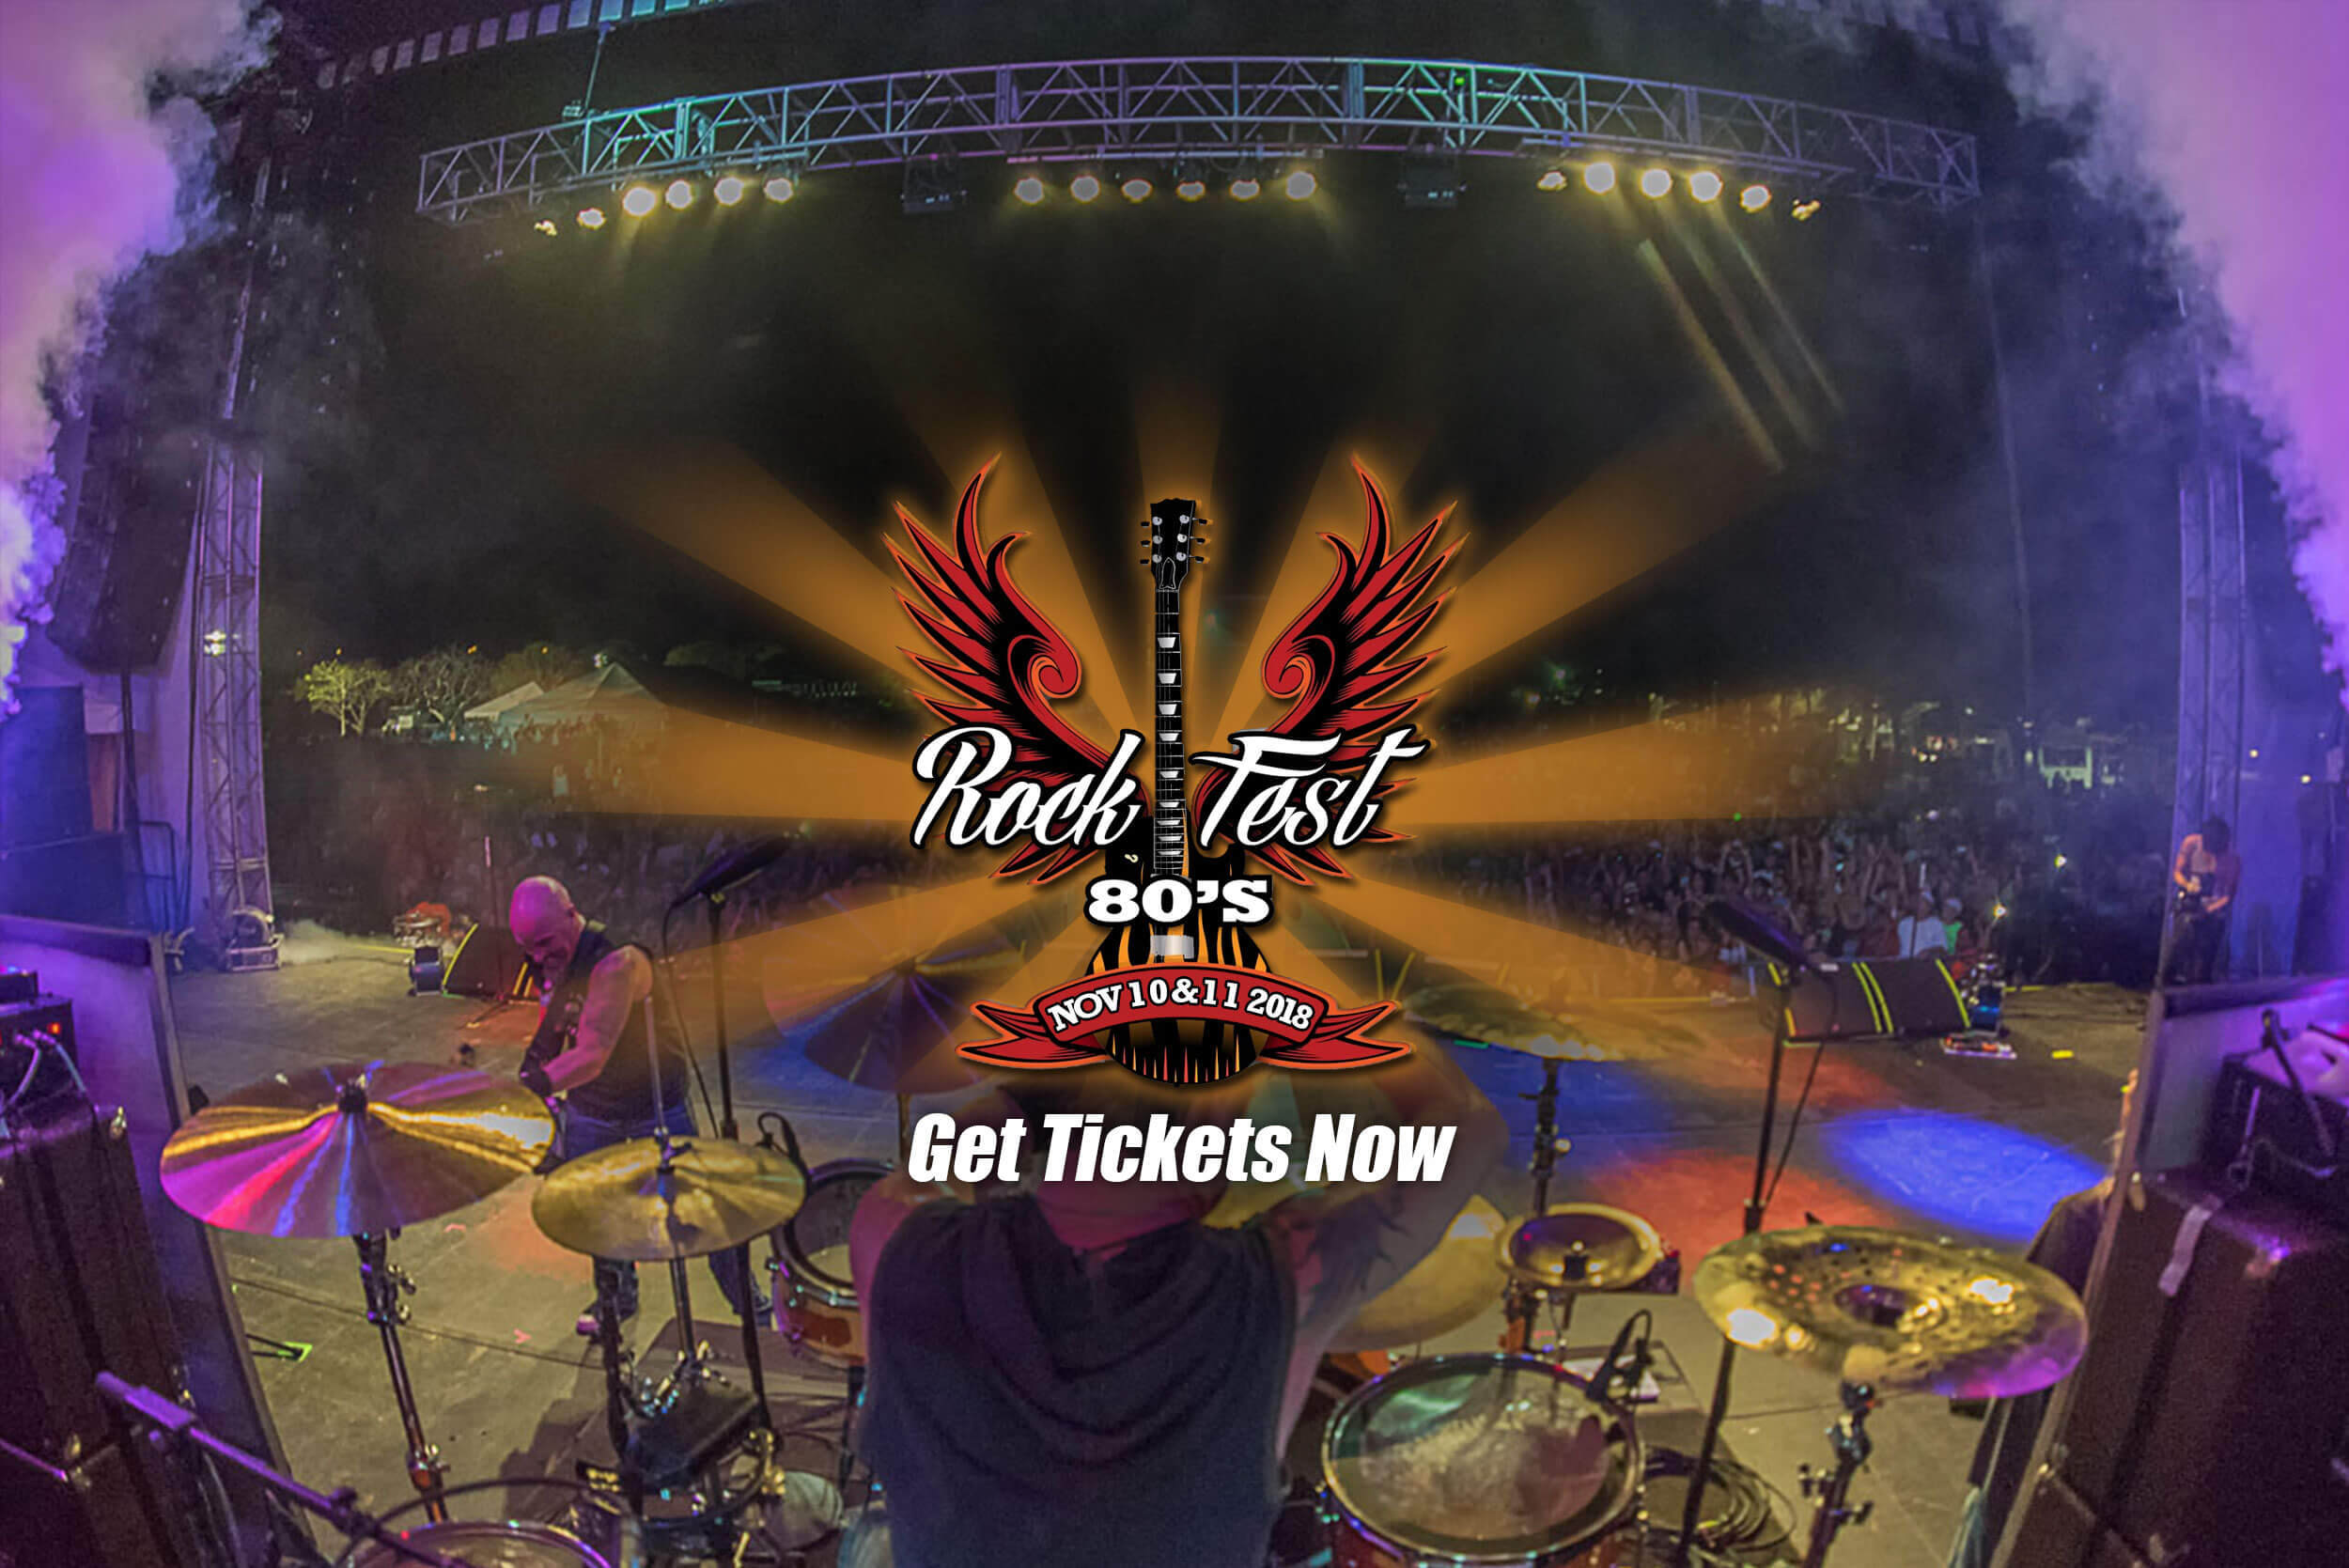 Rockfest 80's get your tickets now!